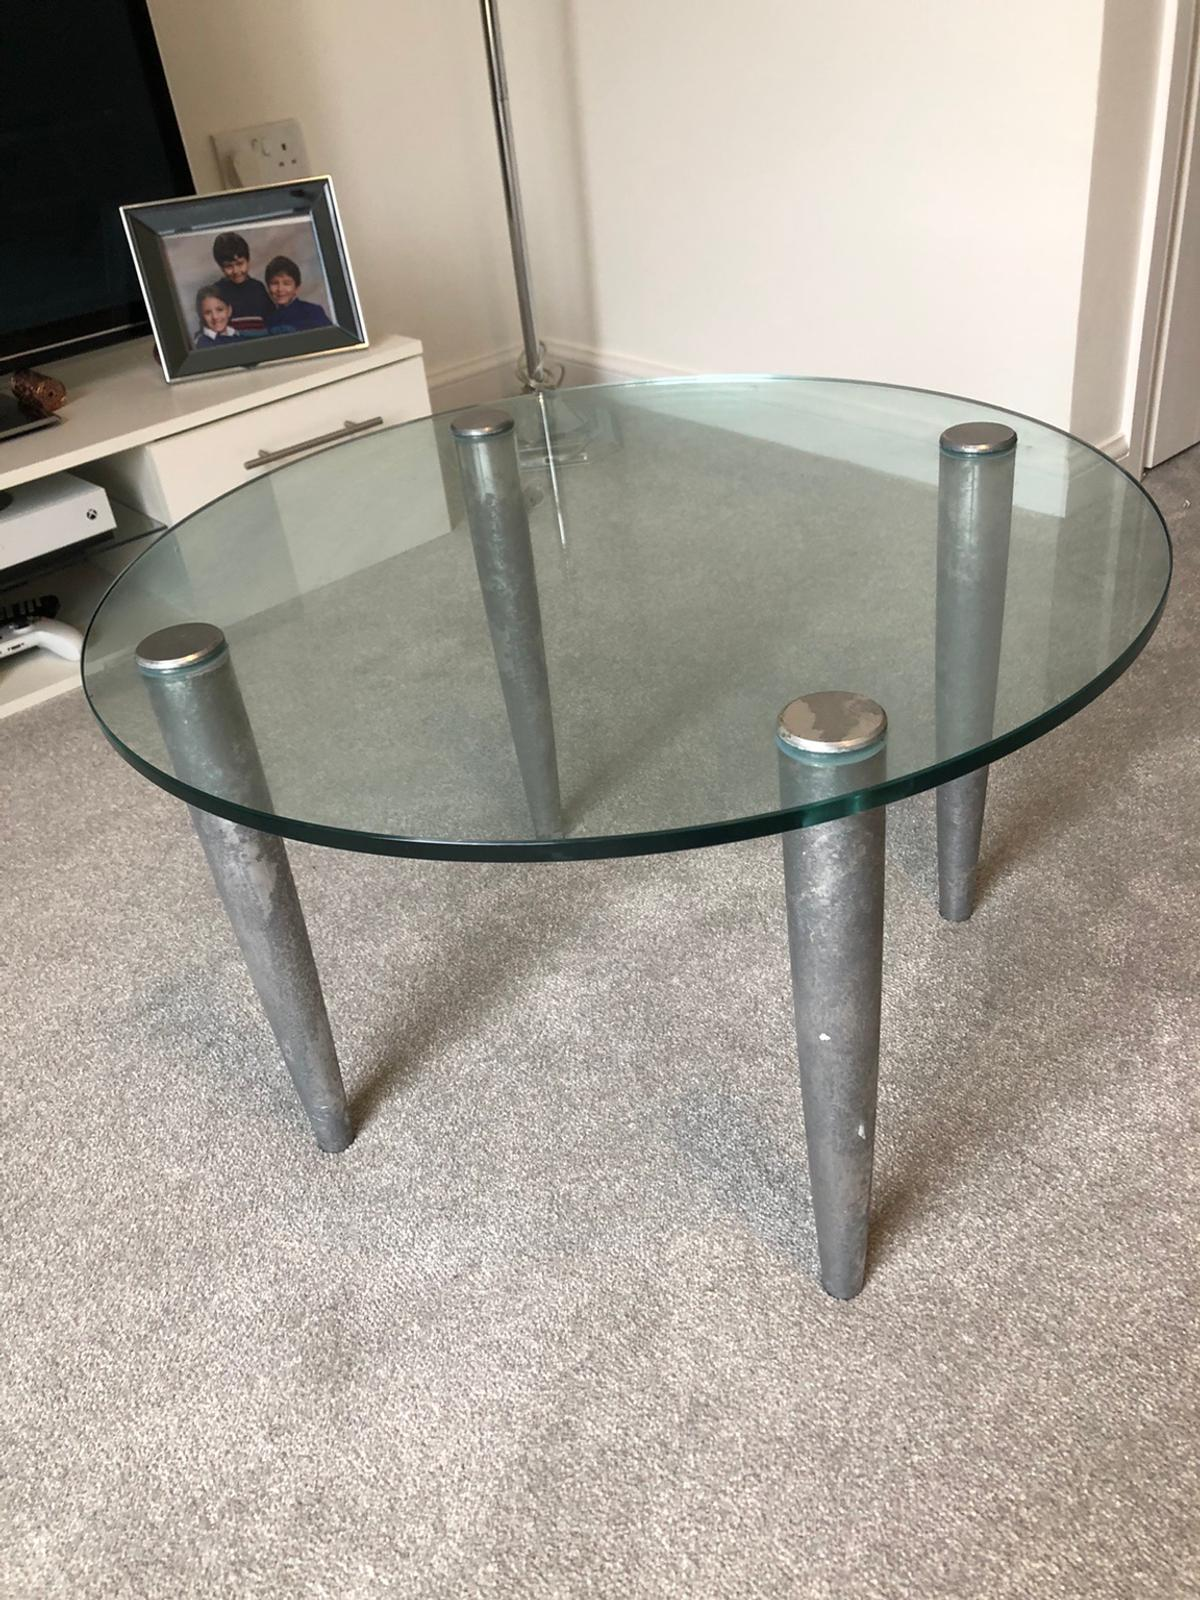 Round Glass Coffee Table In Horsham For 20 00 For Sale Shpock